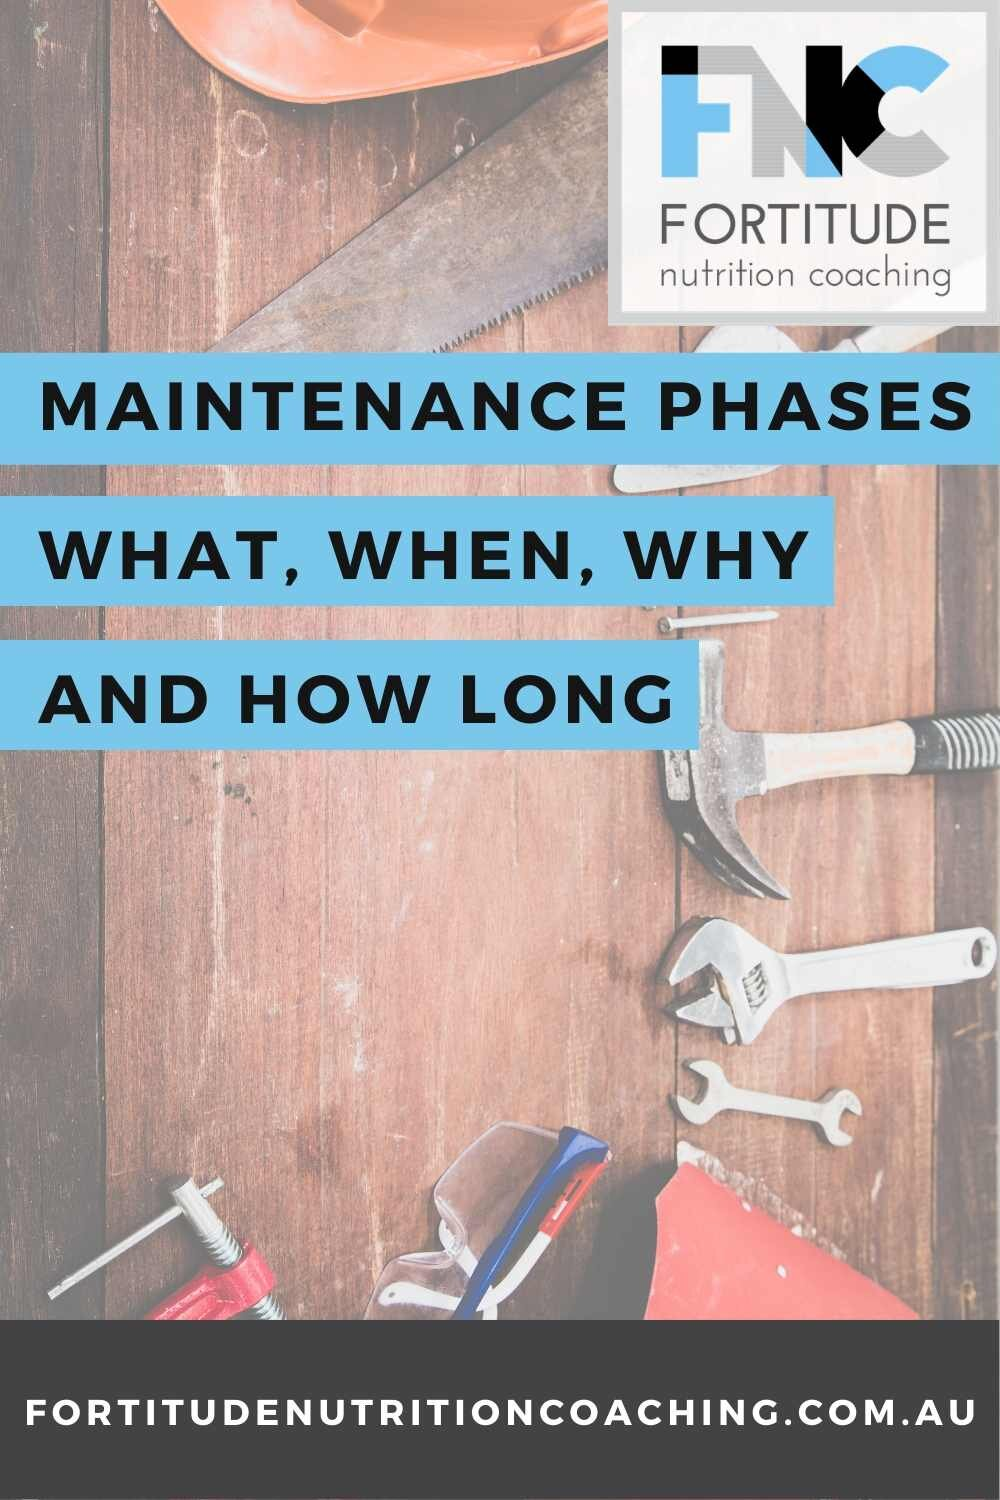 how long should a diet maintainence phase be